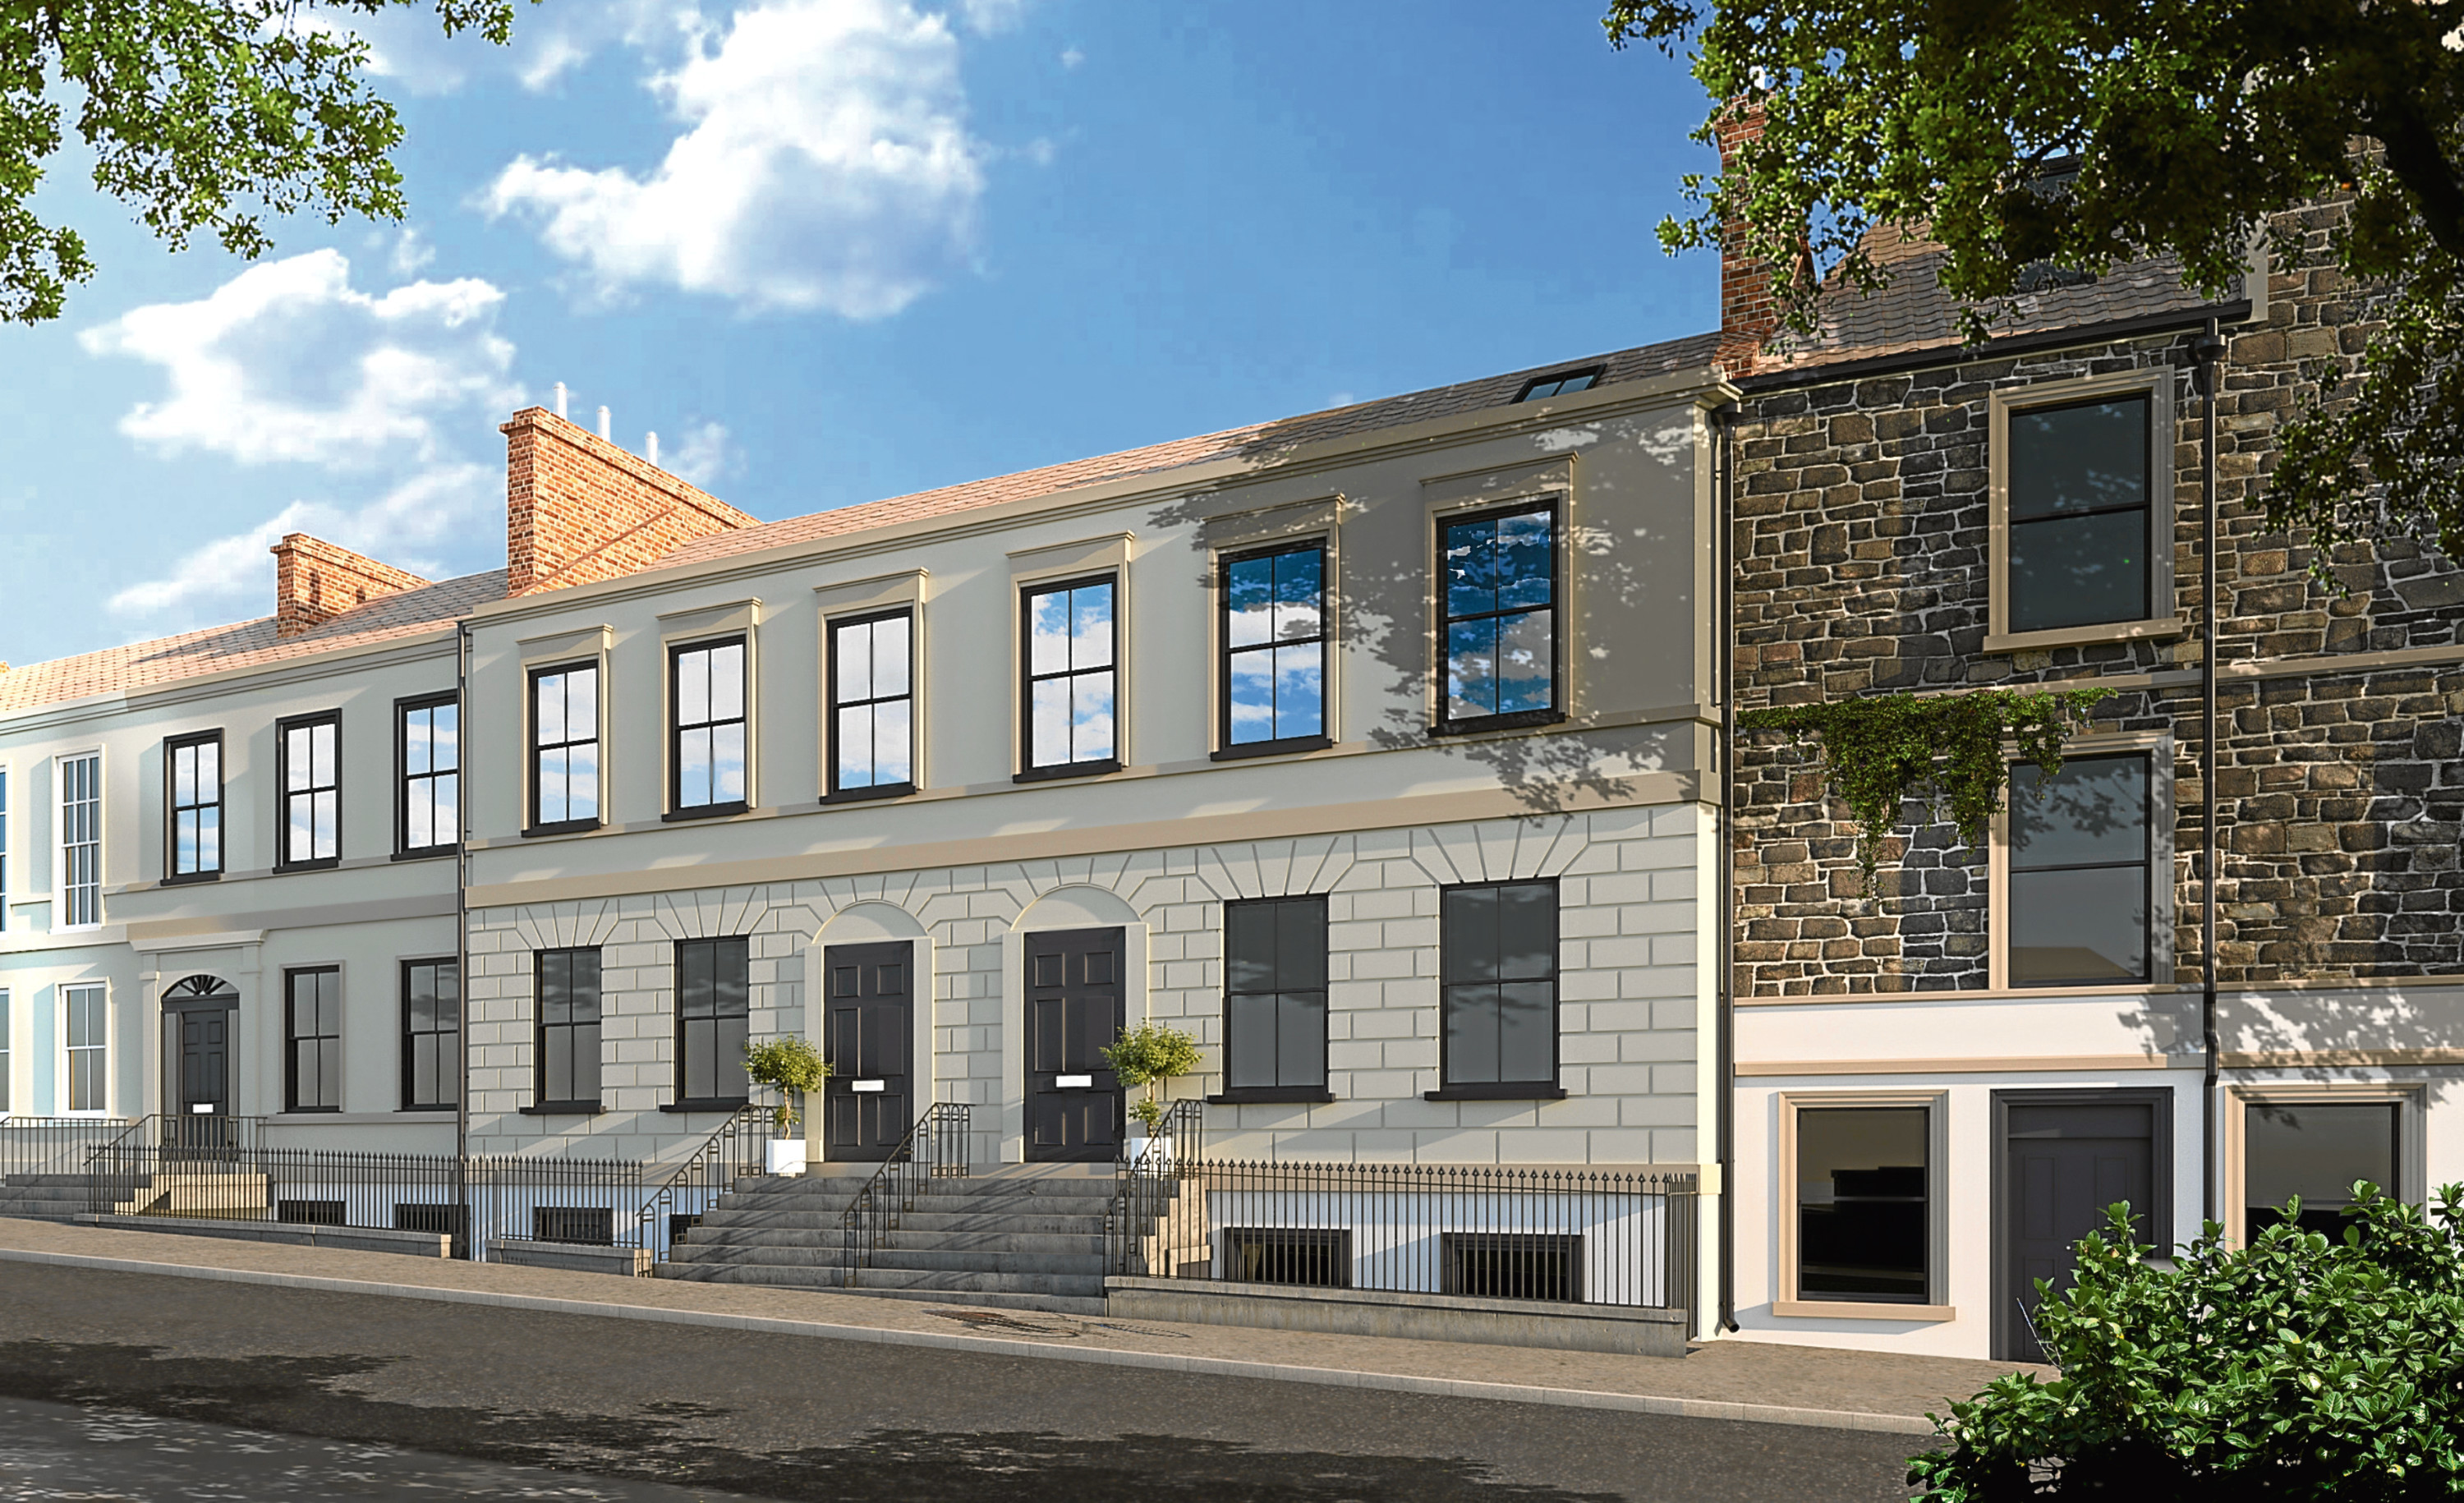 An artist's impression of the flats where one of the city's most popular pubs used to be based